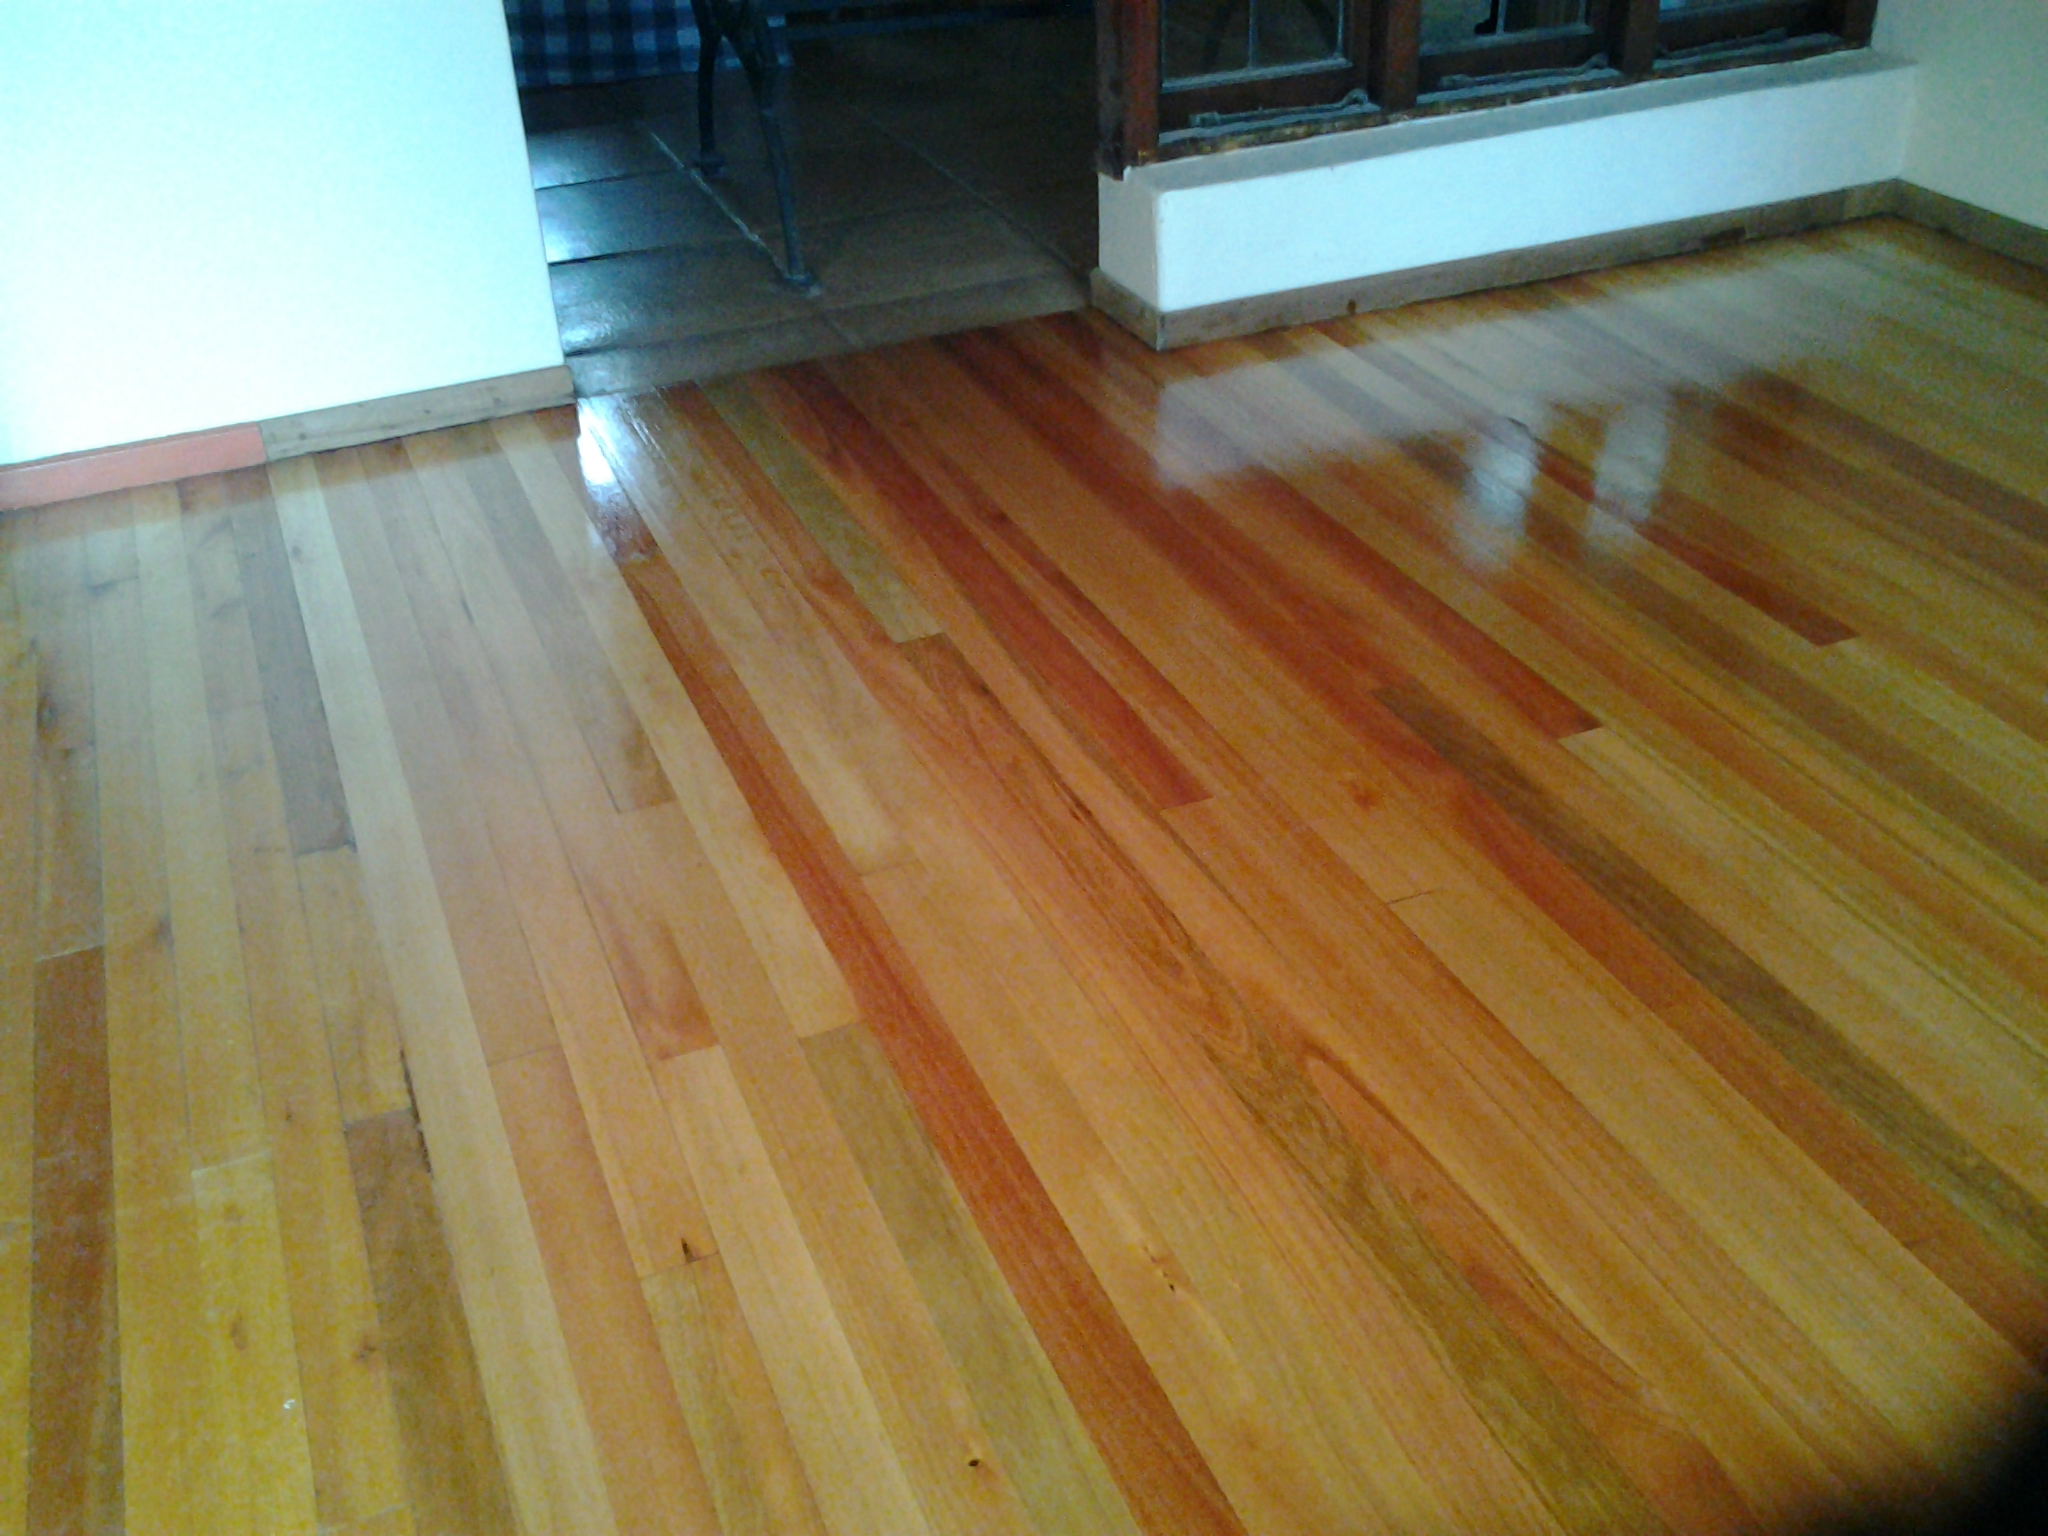 Wooden Floors The Wood Joint Wooden Decks And Floors